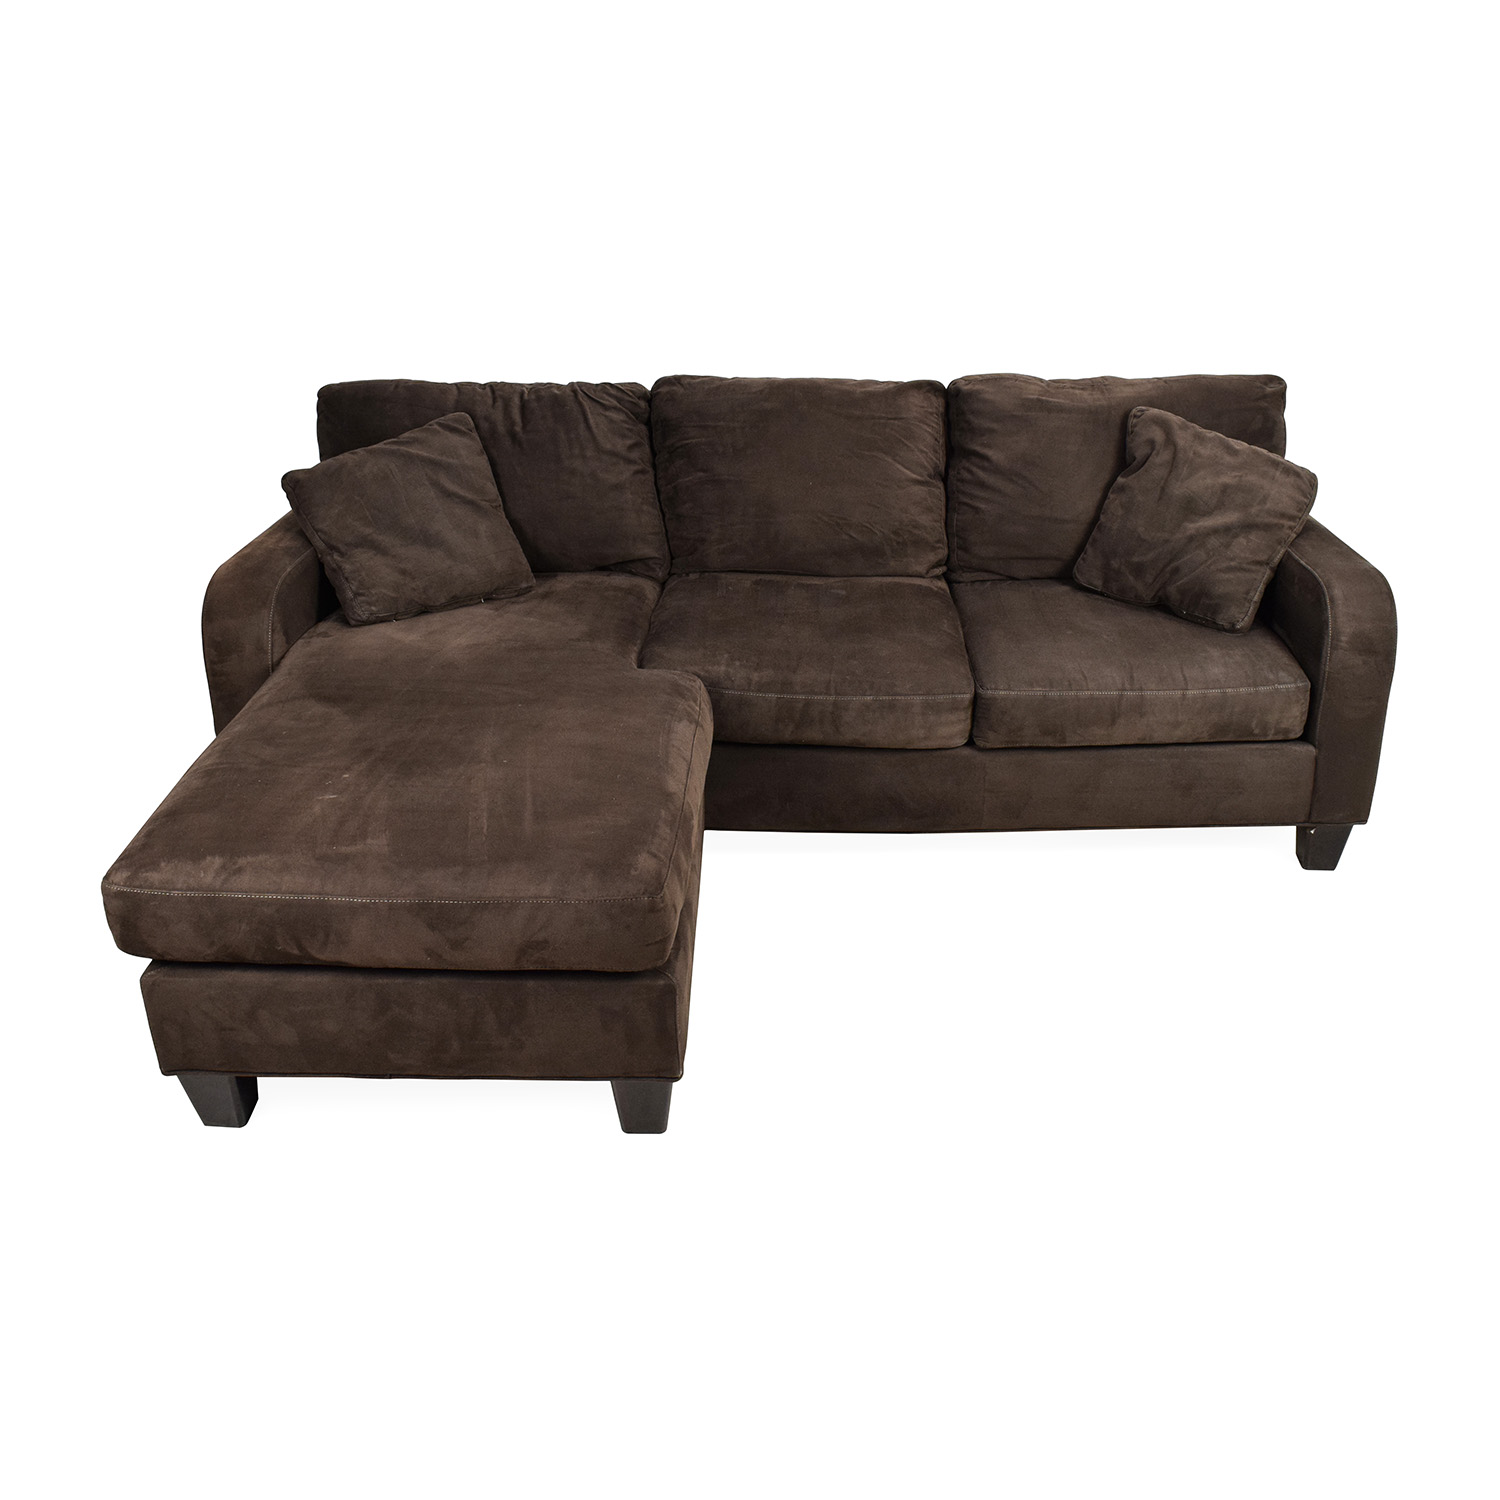 Microfiber chaise sofa microfiber sofa chaise lounge for Gray microfiber sectional sofa with chaise